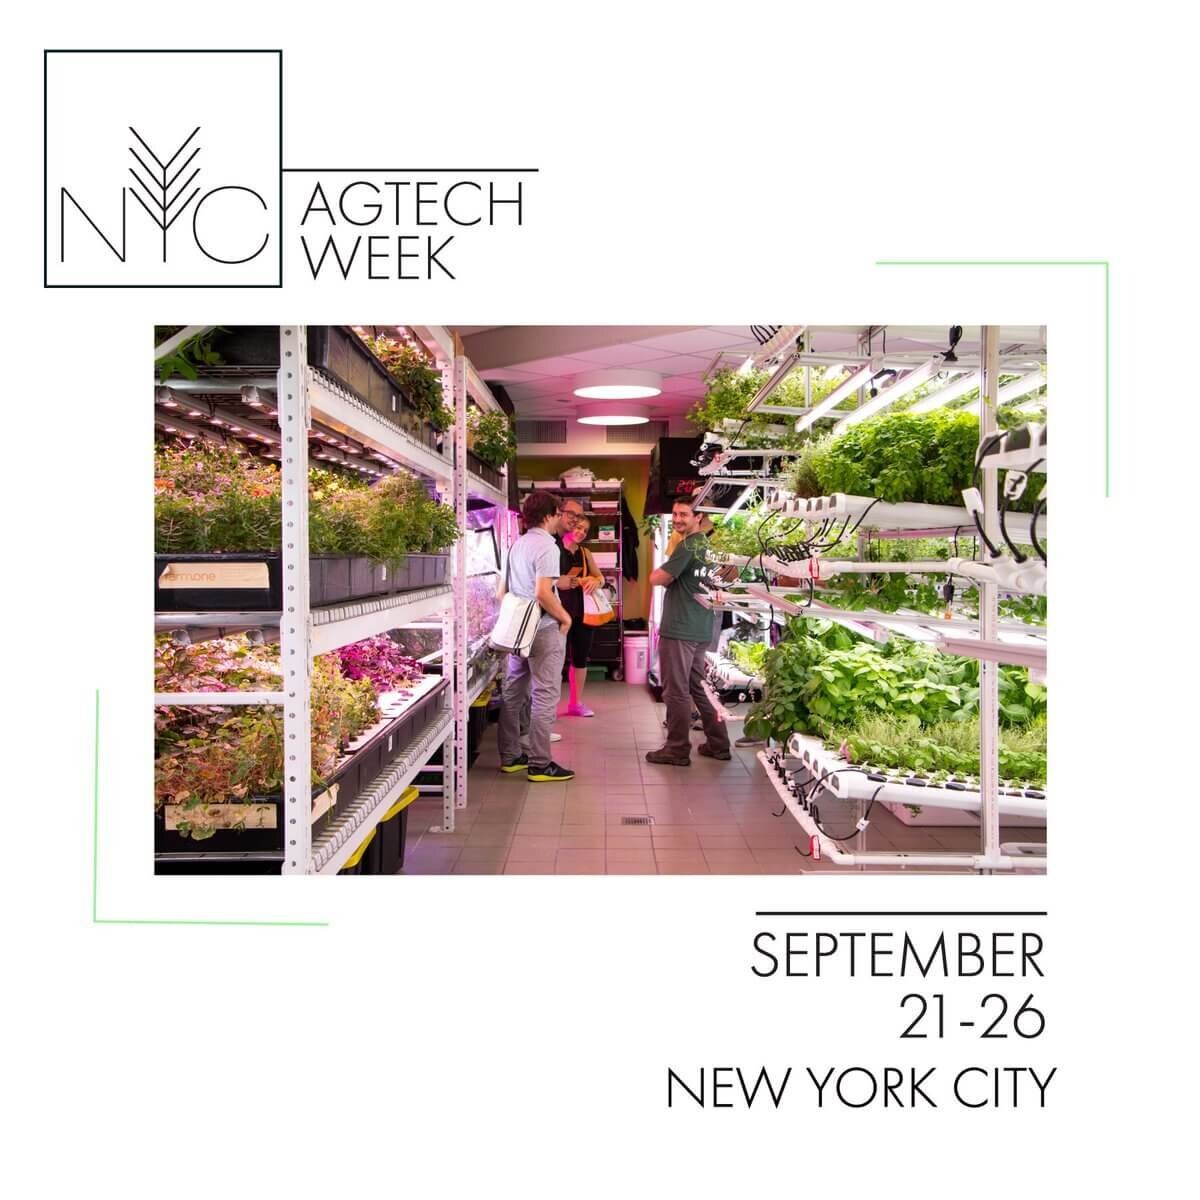 NYC AgTech Week Featured AgTech Week 2019 featured AgTech companies and Agriculture Technology Advocates